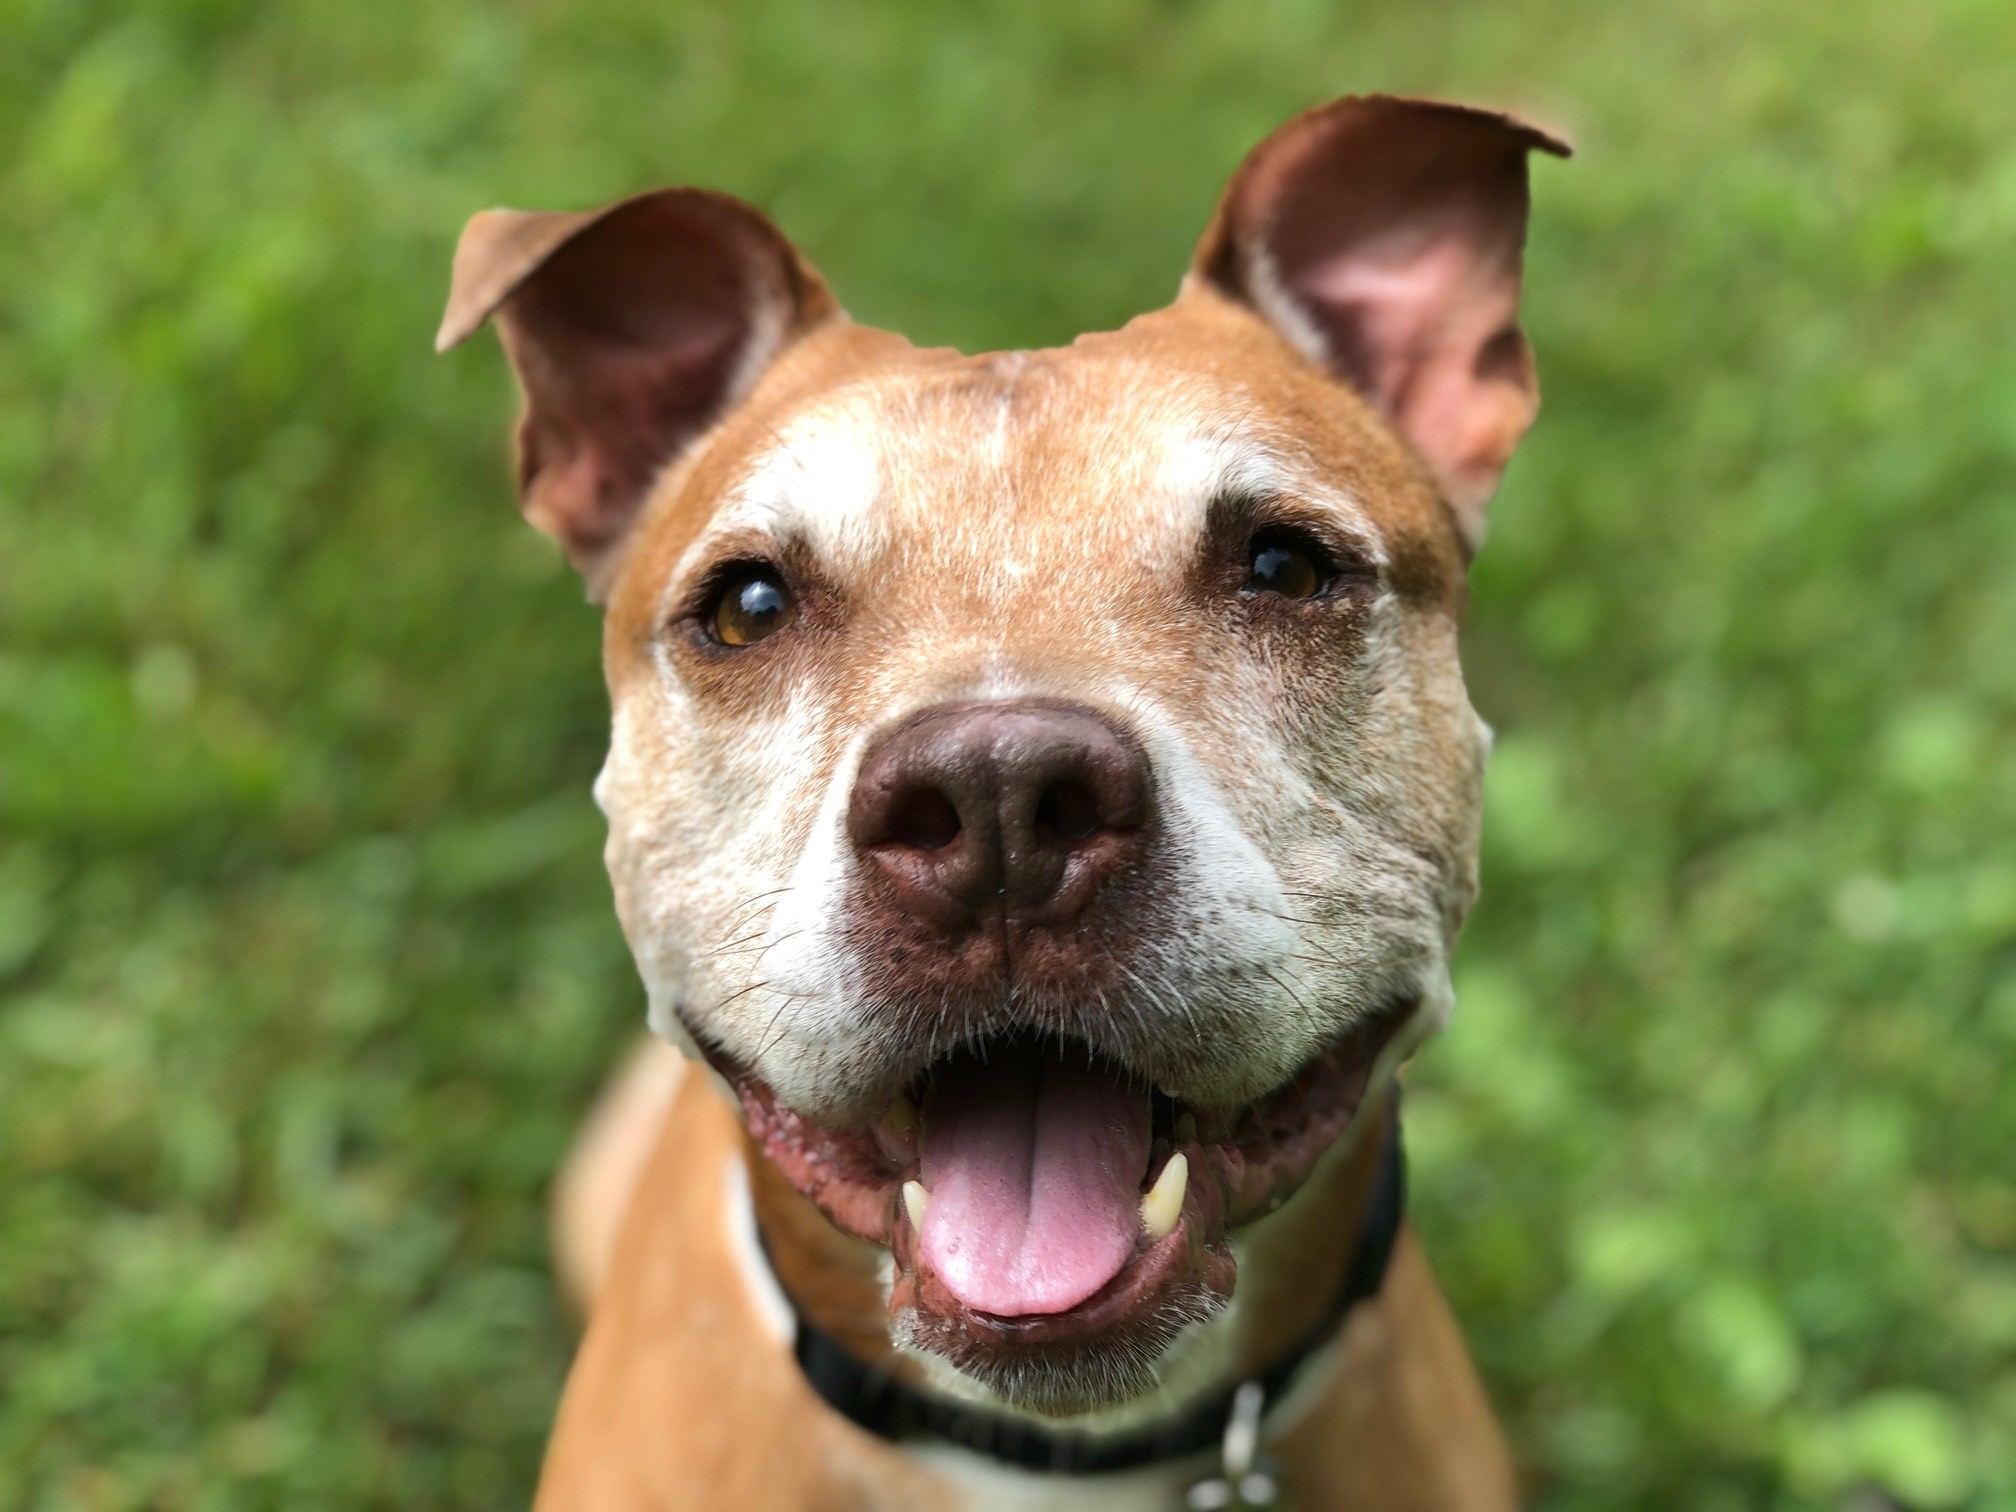 Winkie is WCCO's Pet of the Week